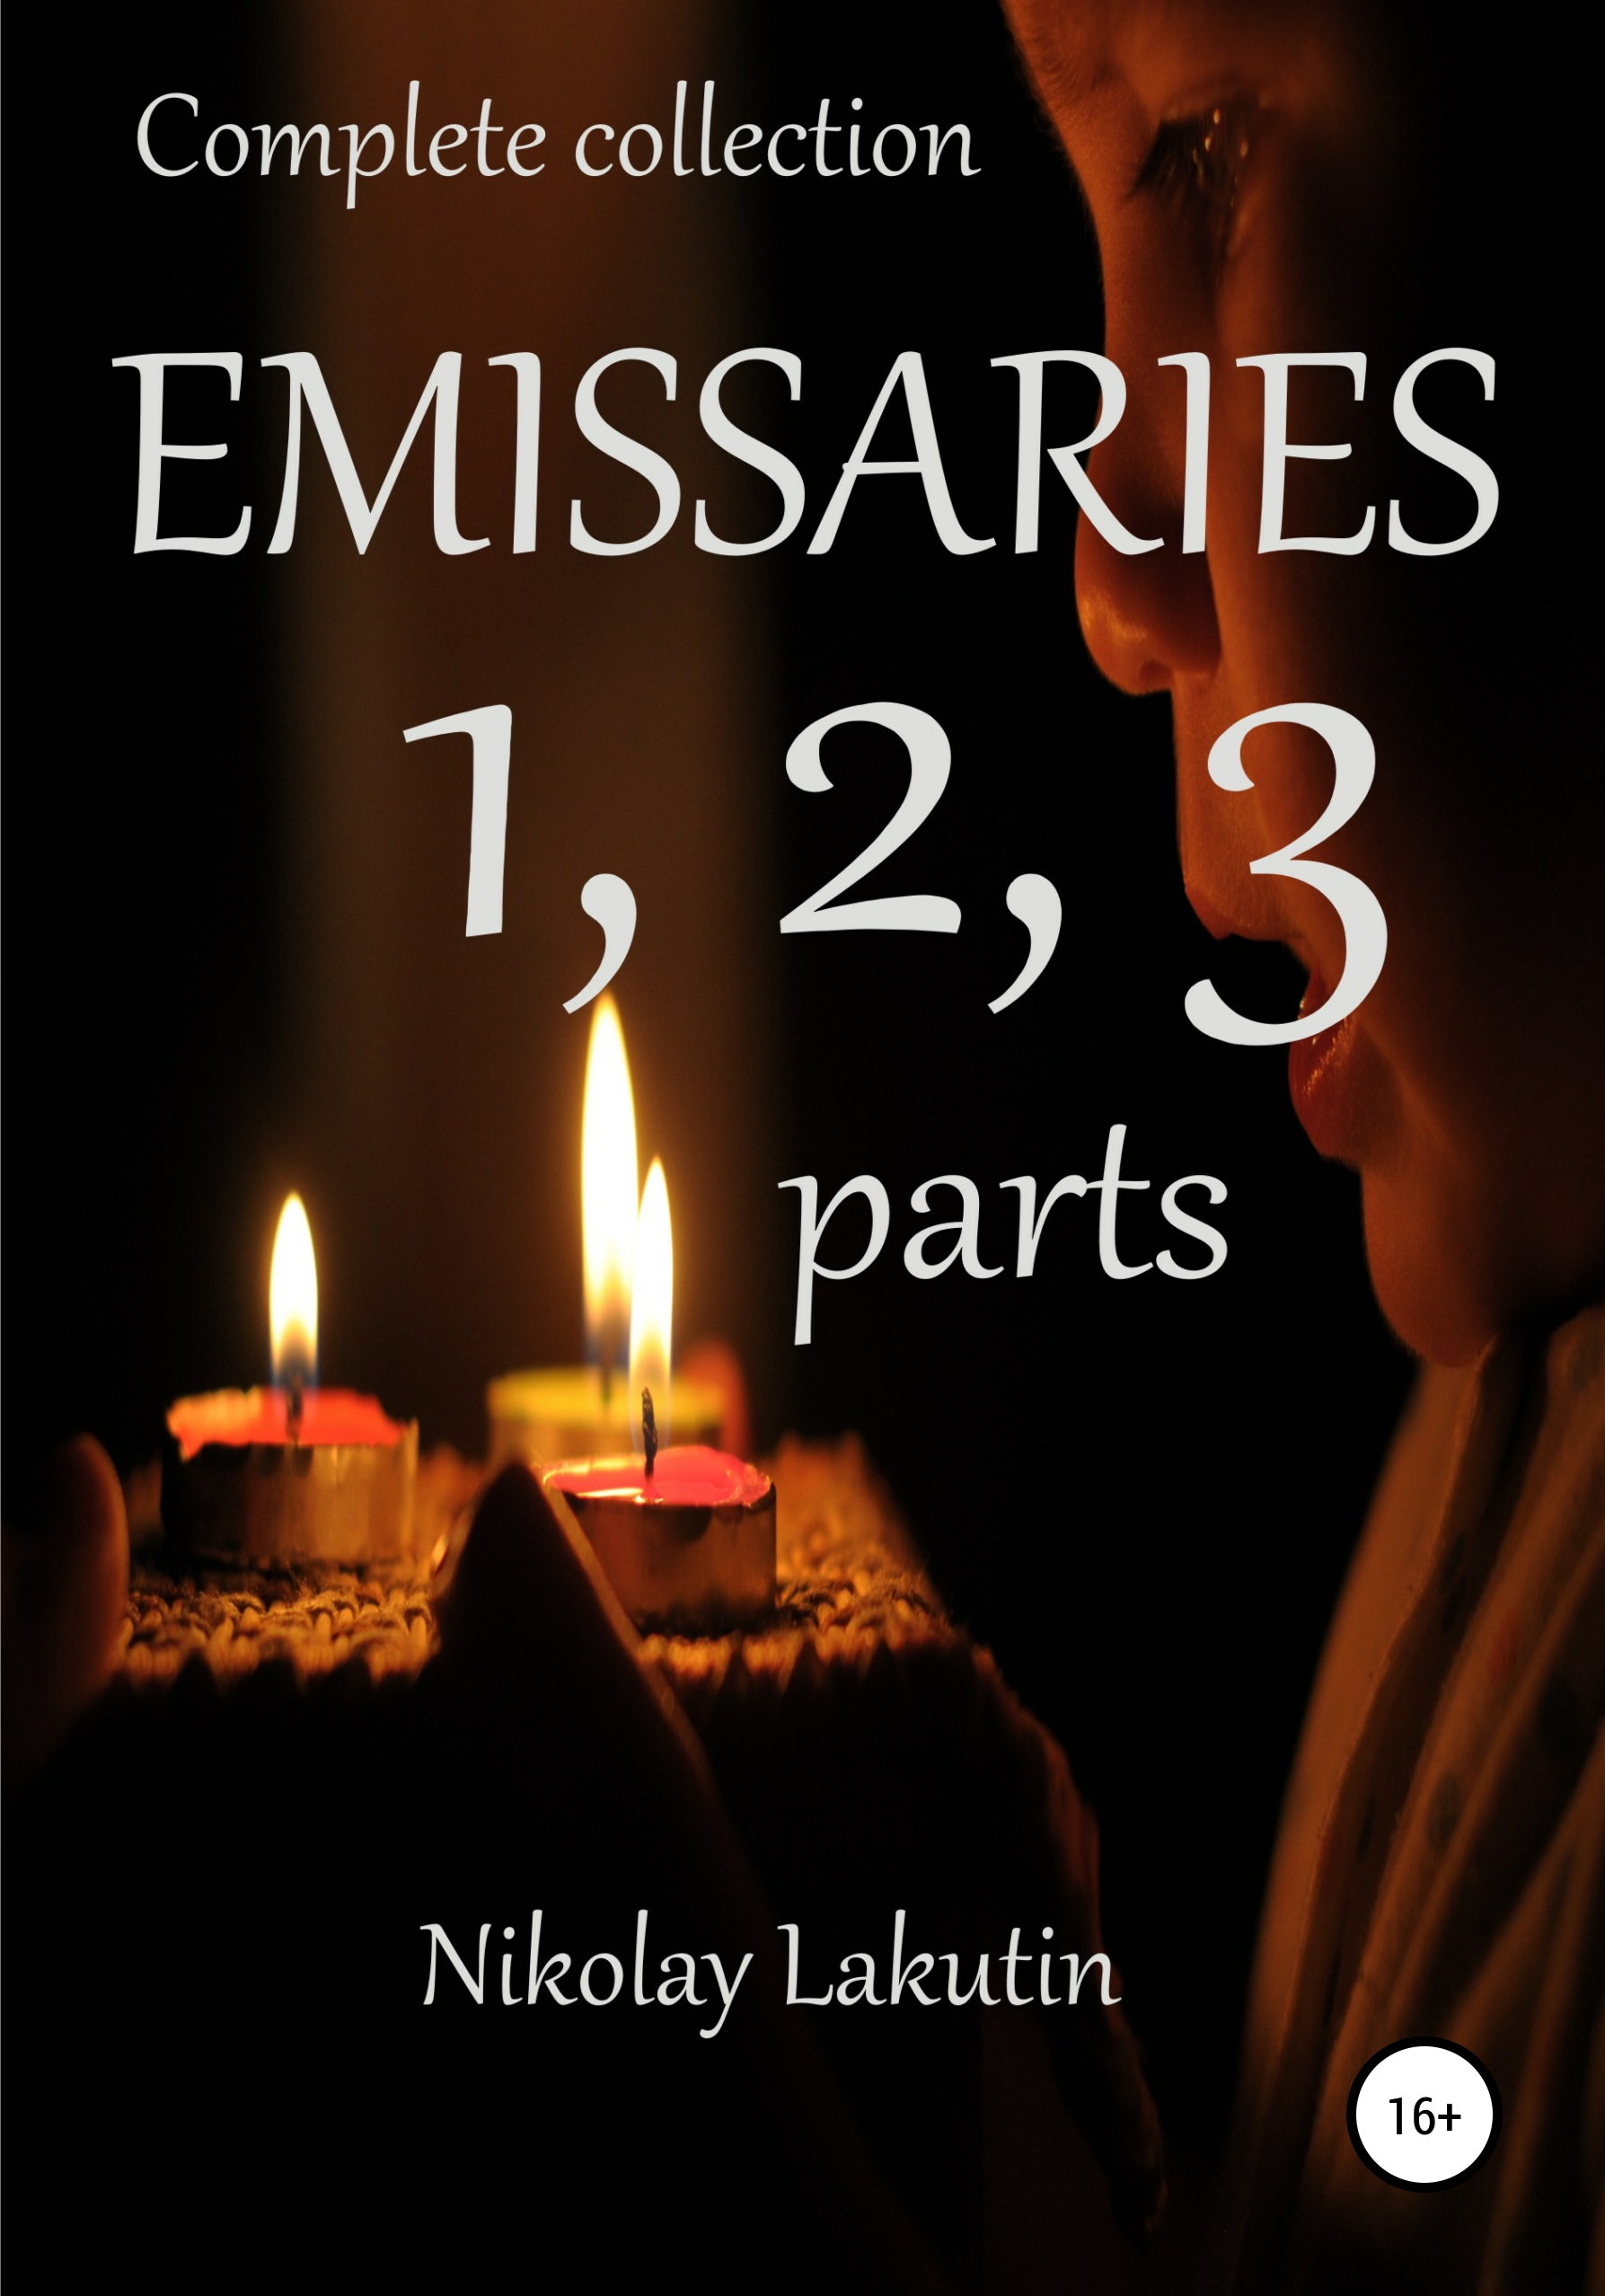 Nikolay Lakutin Emissaries 1, 2, 3 parts. Complete collection louisa young my dear i wanted to tell you